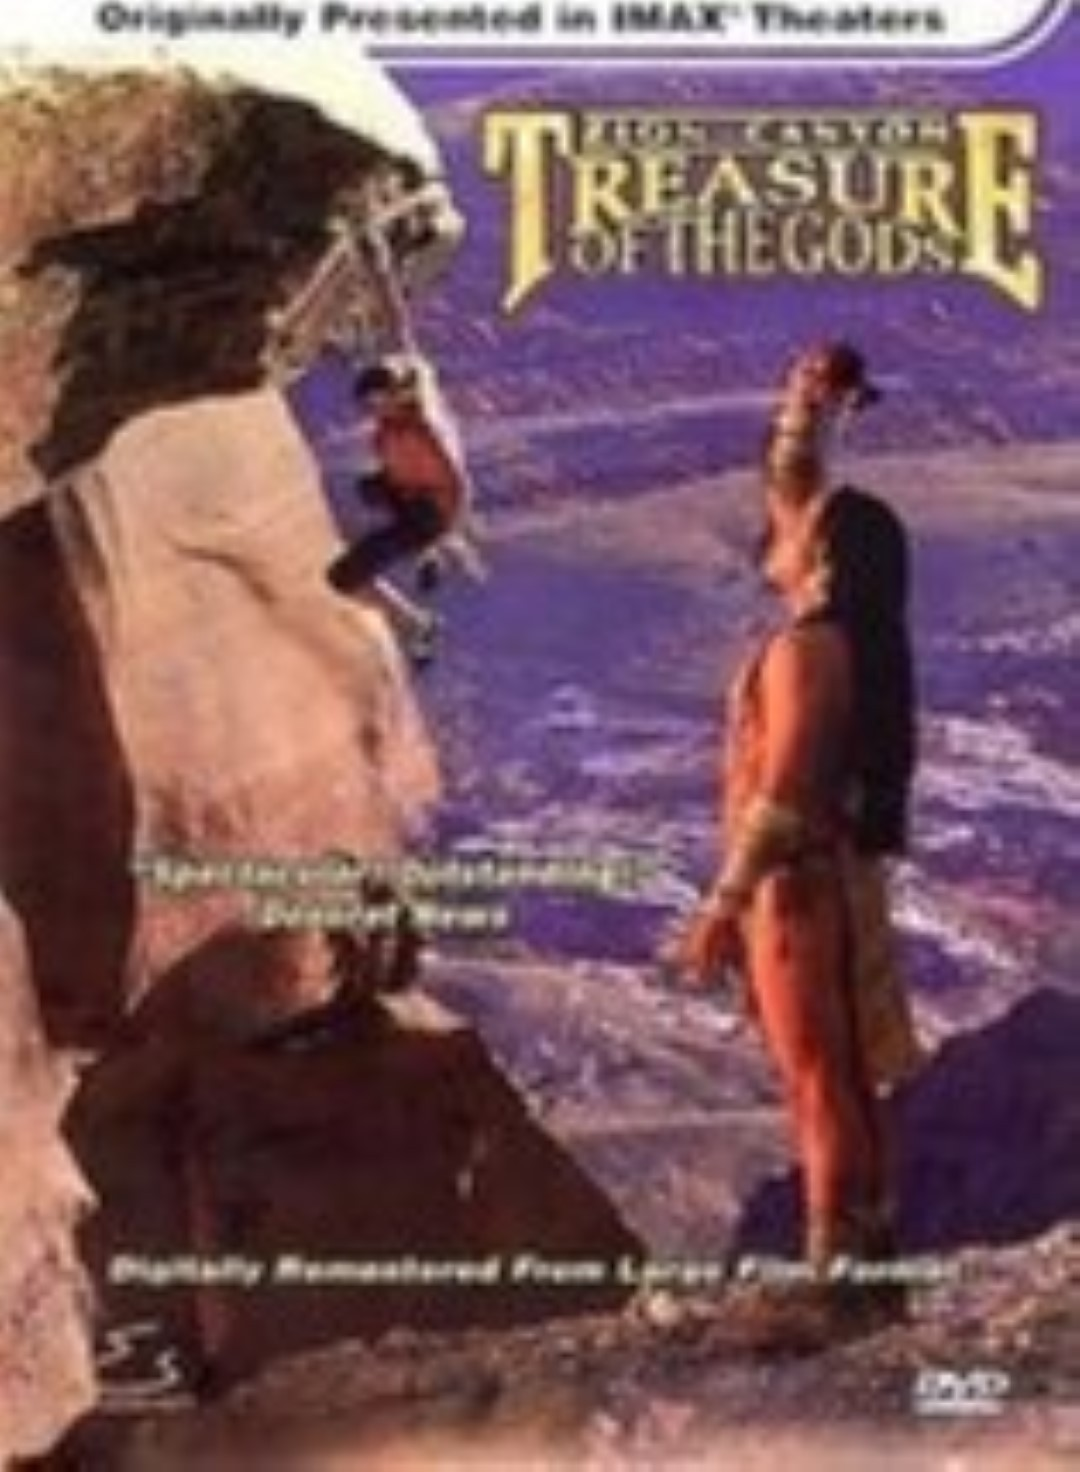 Zion Canyon: Treasure of the Gods Dvd